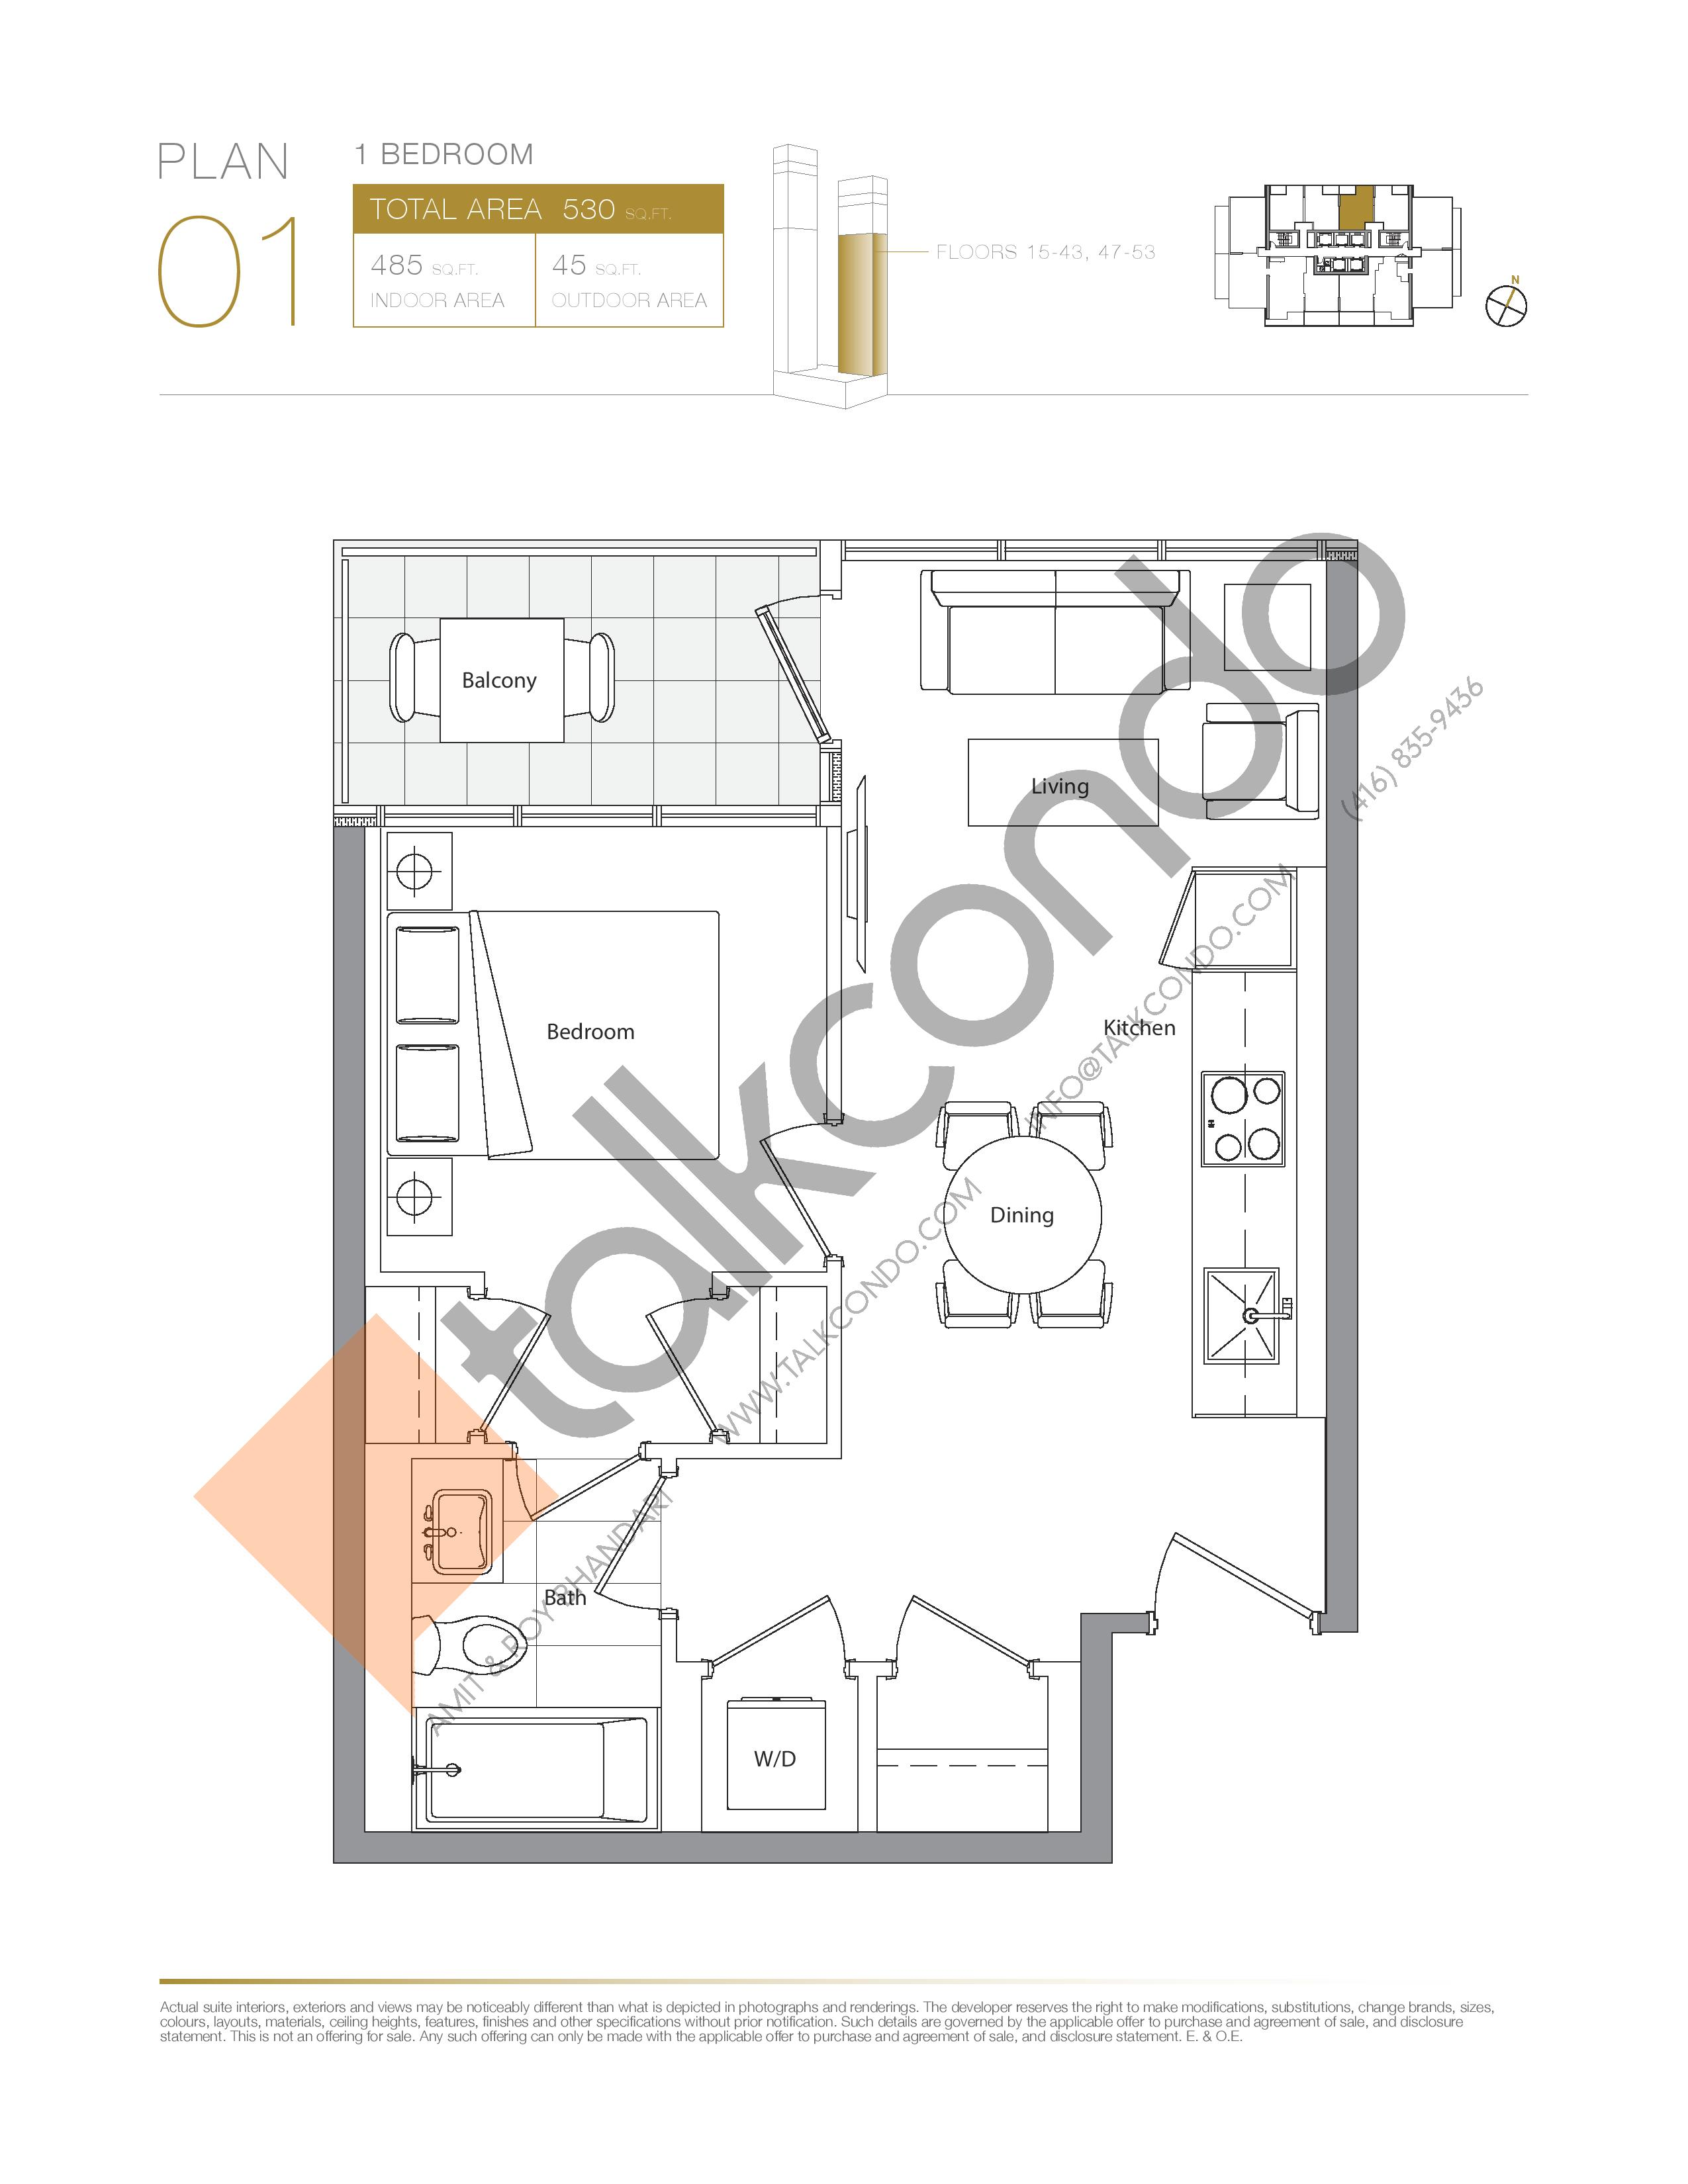 Plan 01 - East Tower Lower Floor Plan at Concord Canada House Condos - 485 sq.ft